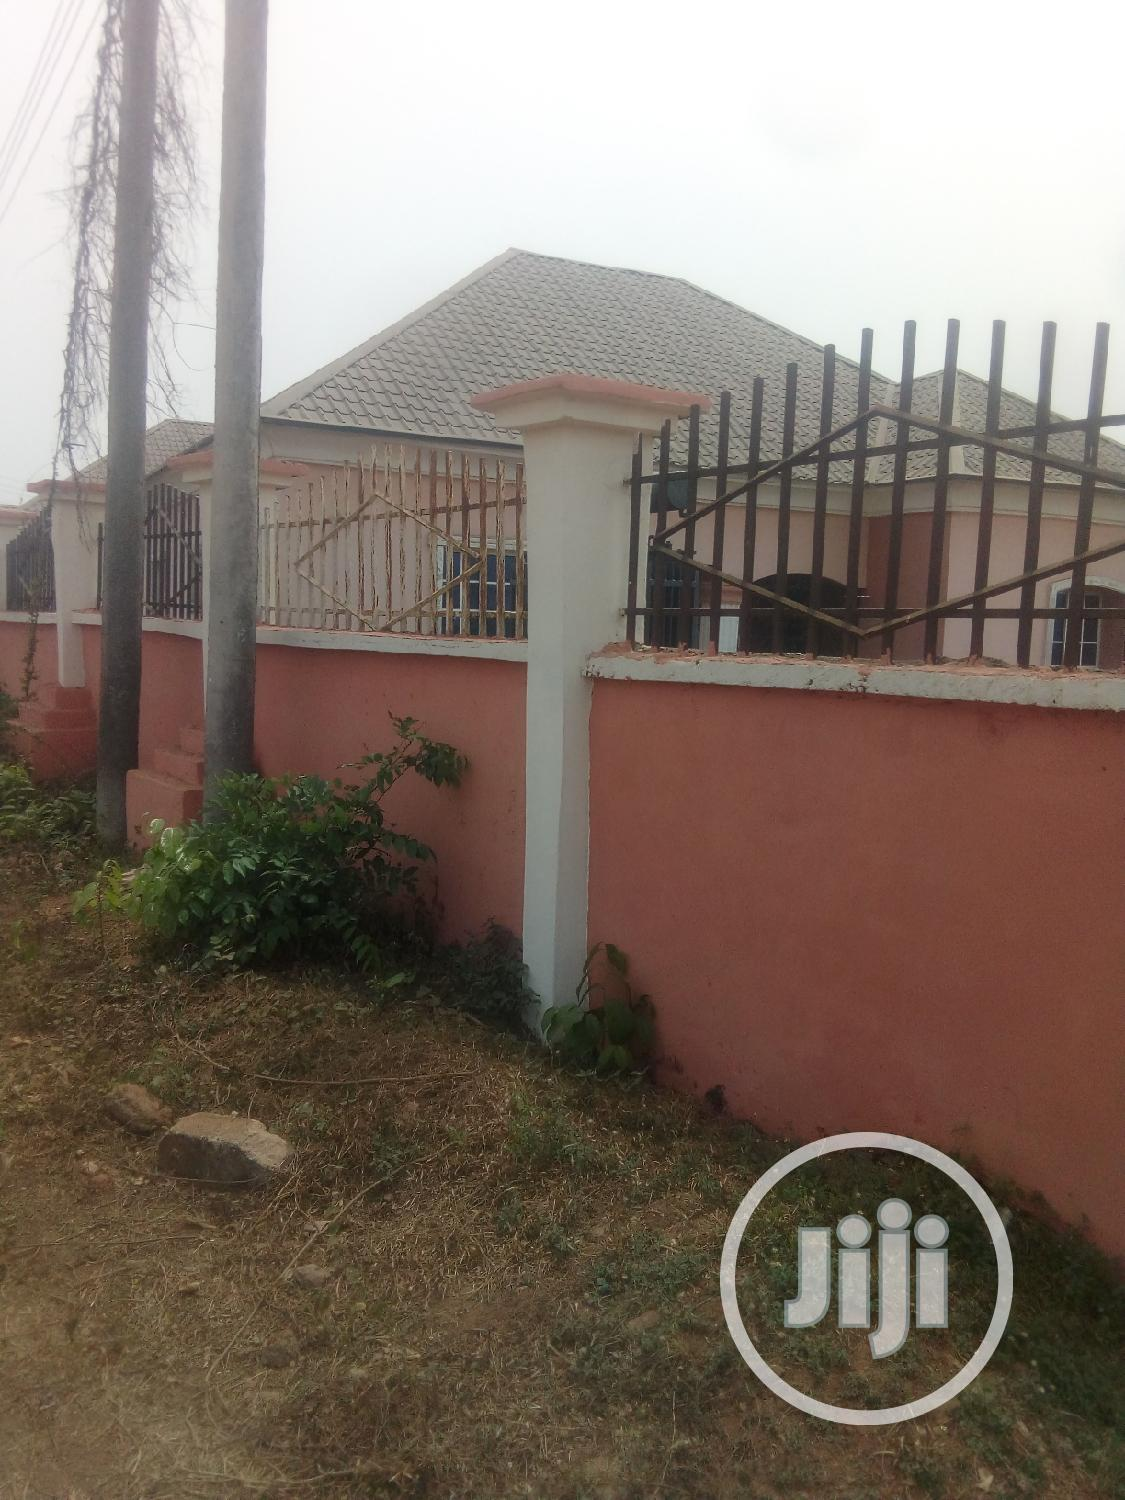 New House Avaliable in Umuahia Town, Both Sales and Renting. | Houses & Apartments For Sale for sale in Umuahia, Abia State, Nigeria